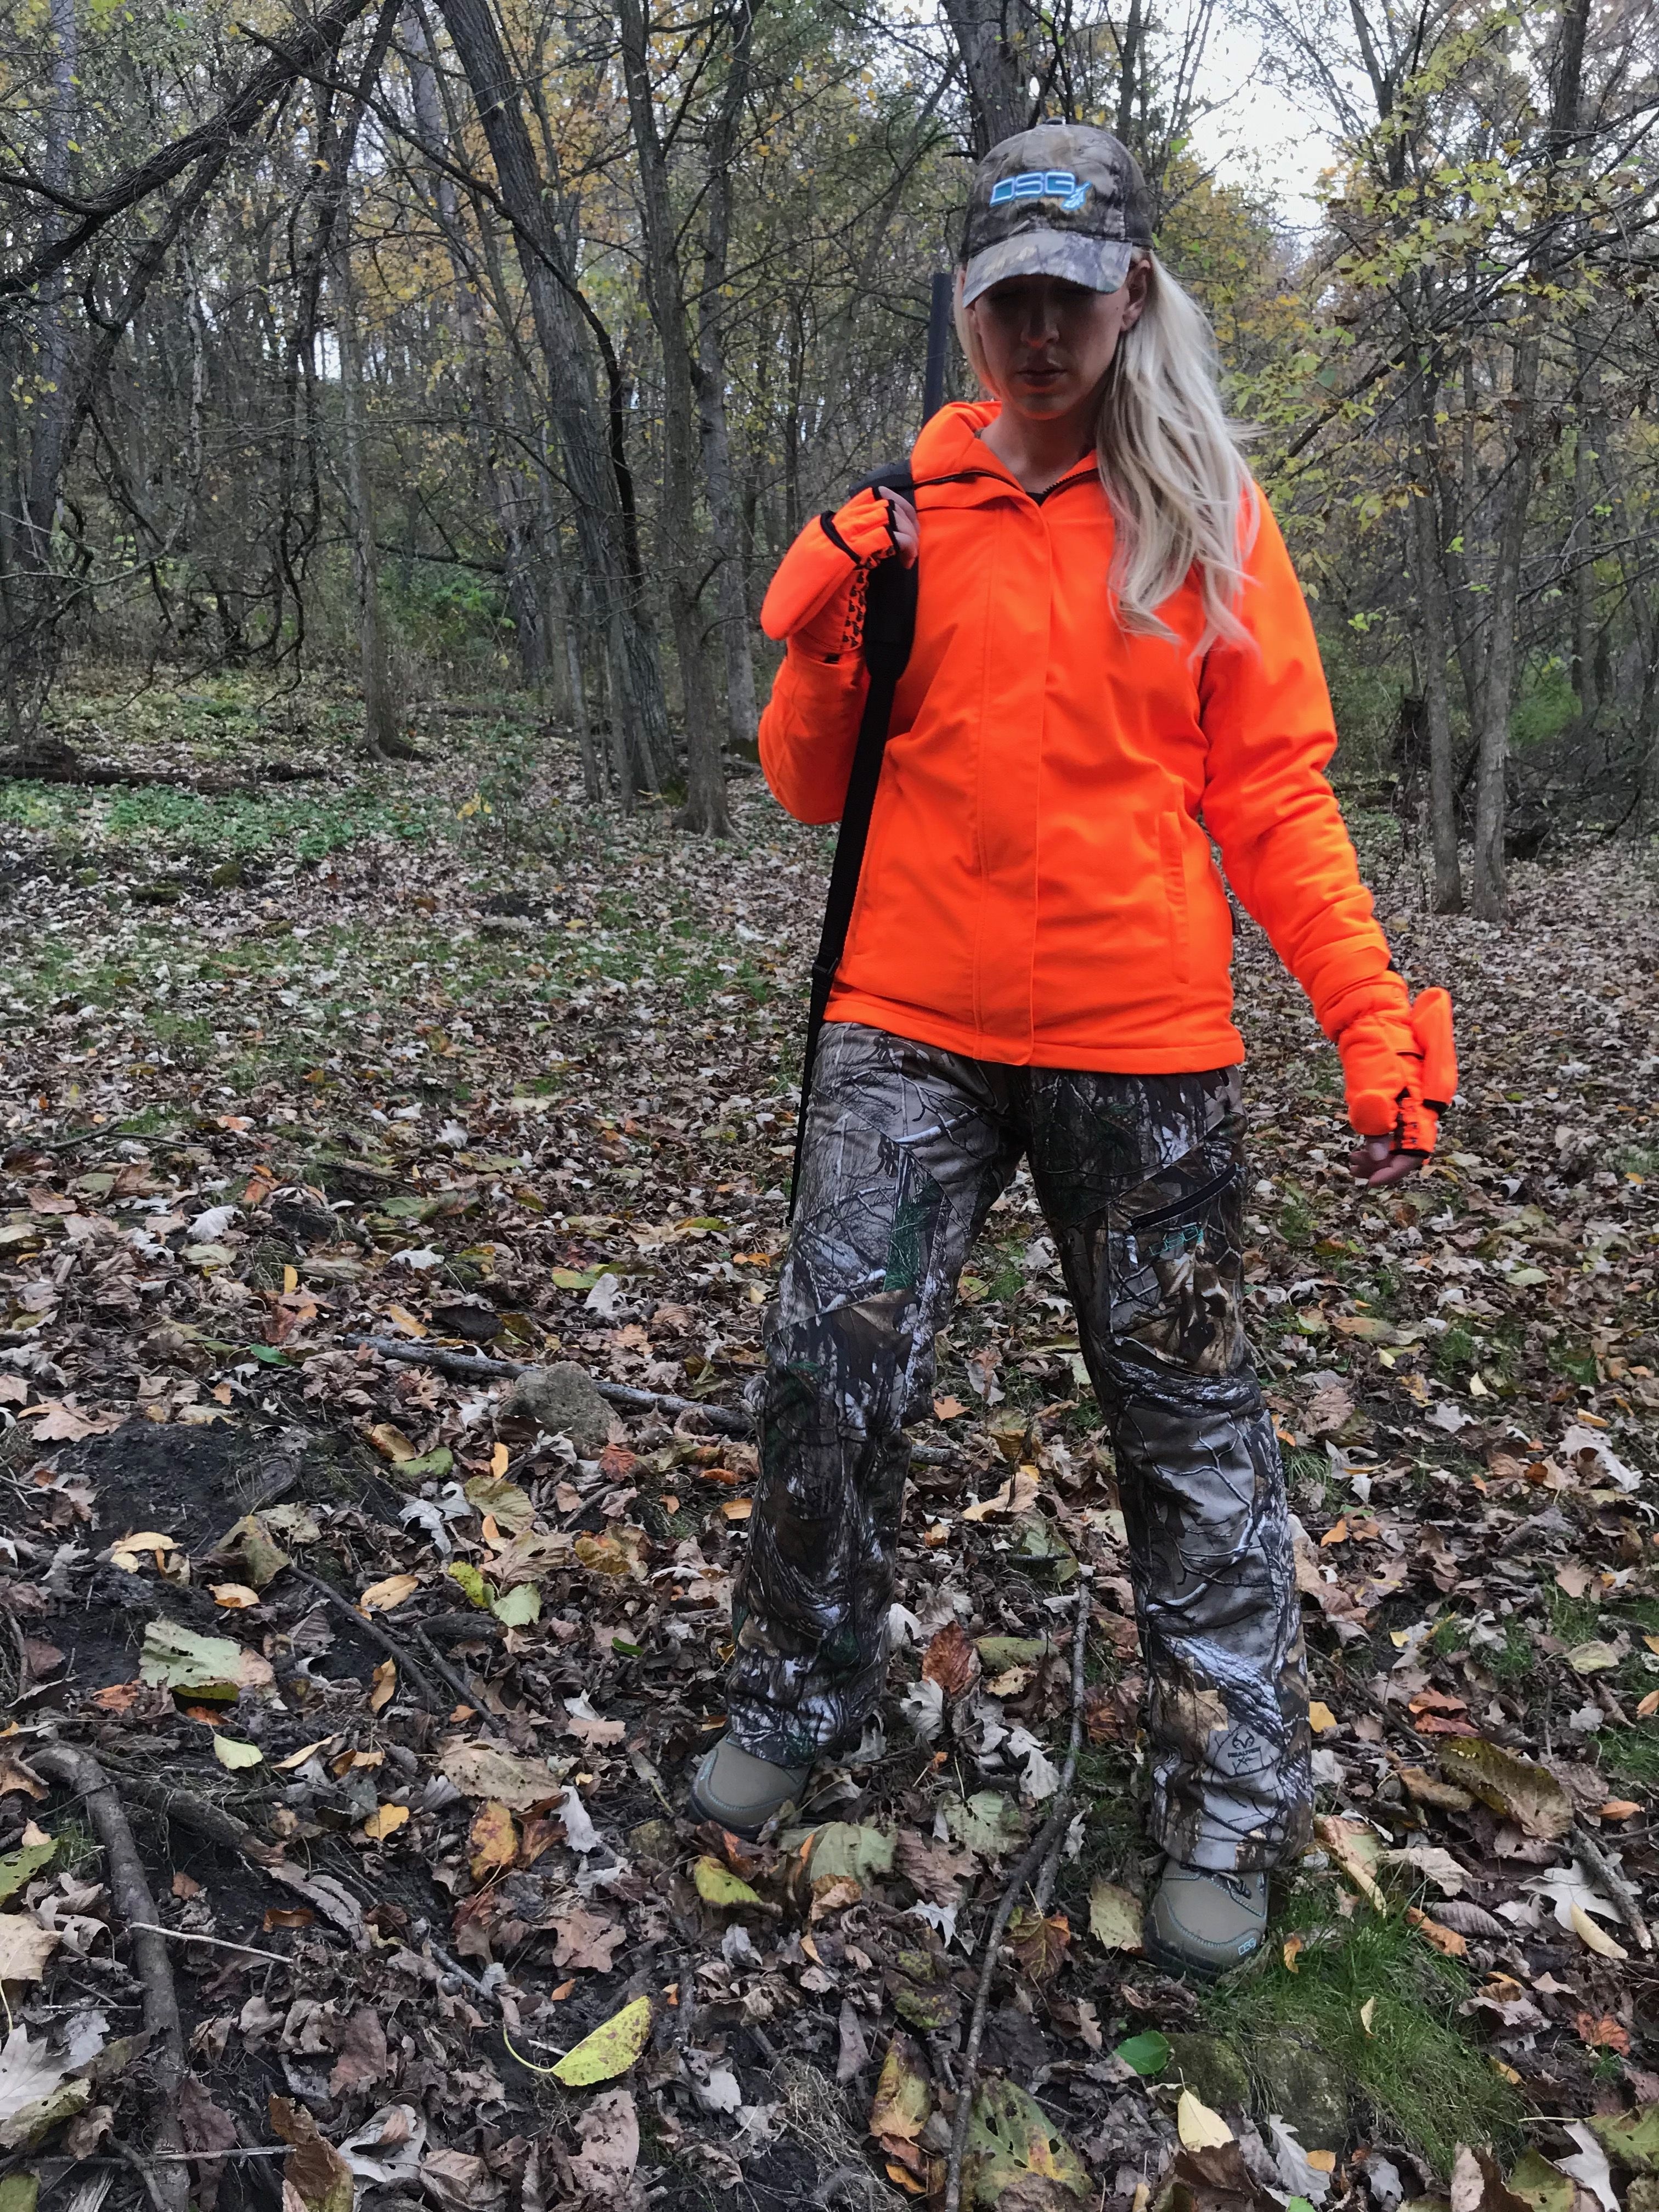 648468b394a0e Cute blaze orange hunting gear, could it be? YES! Look no further than DSG  Outerwear!